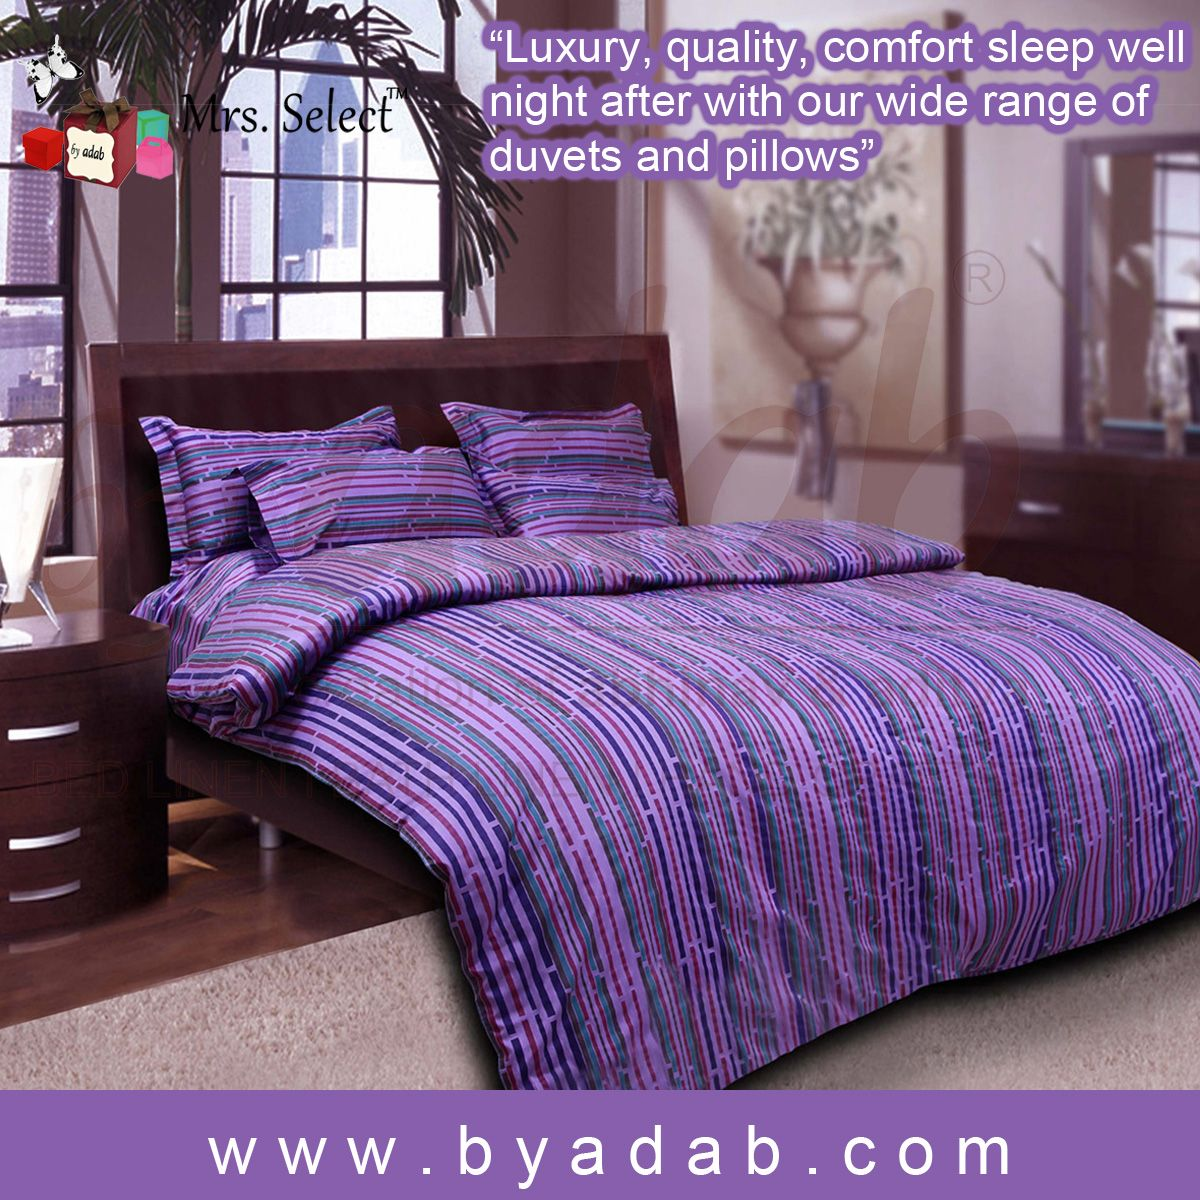 Buy The Luxury Bed Sheet Online : Http://www.byadab.com/bed Linen/bed Sheets.html  Brighten Up Your Bedroom By Spreading This Coloured Bed Sheet Set From By  ...